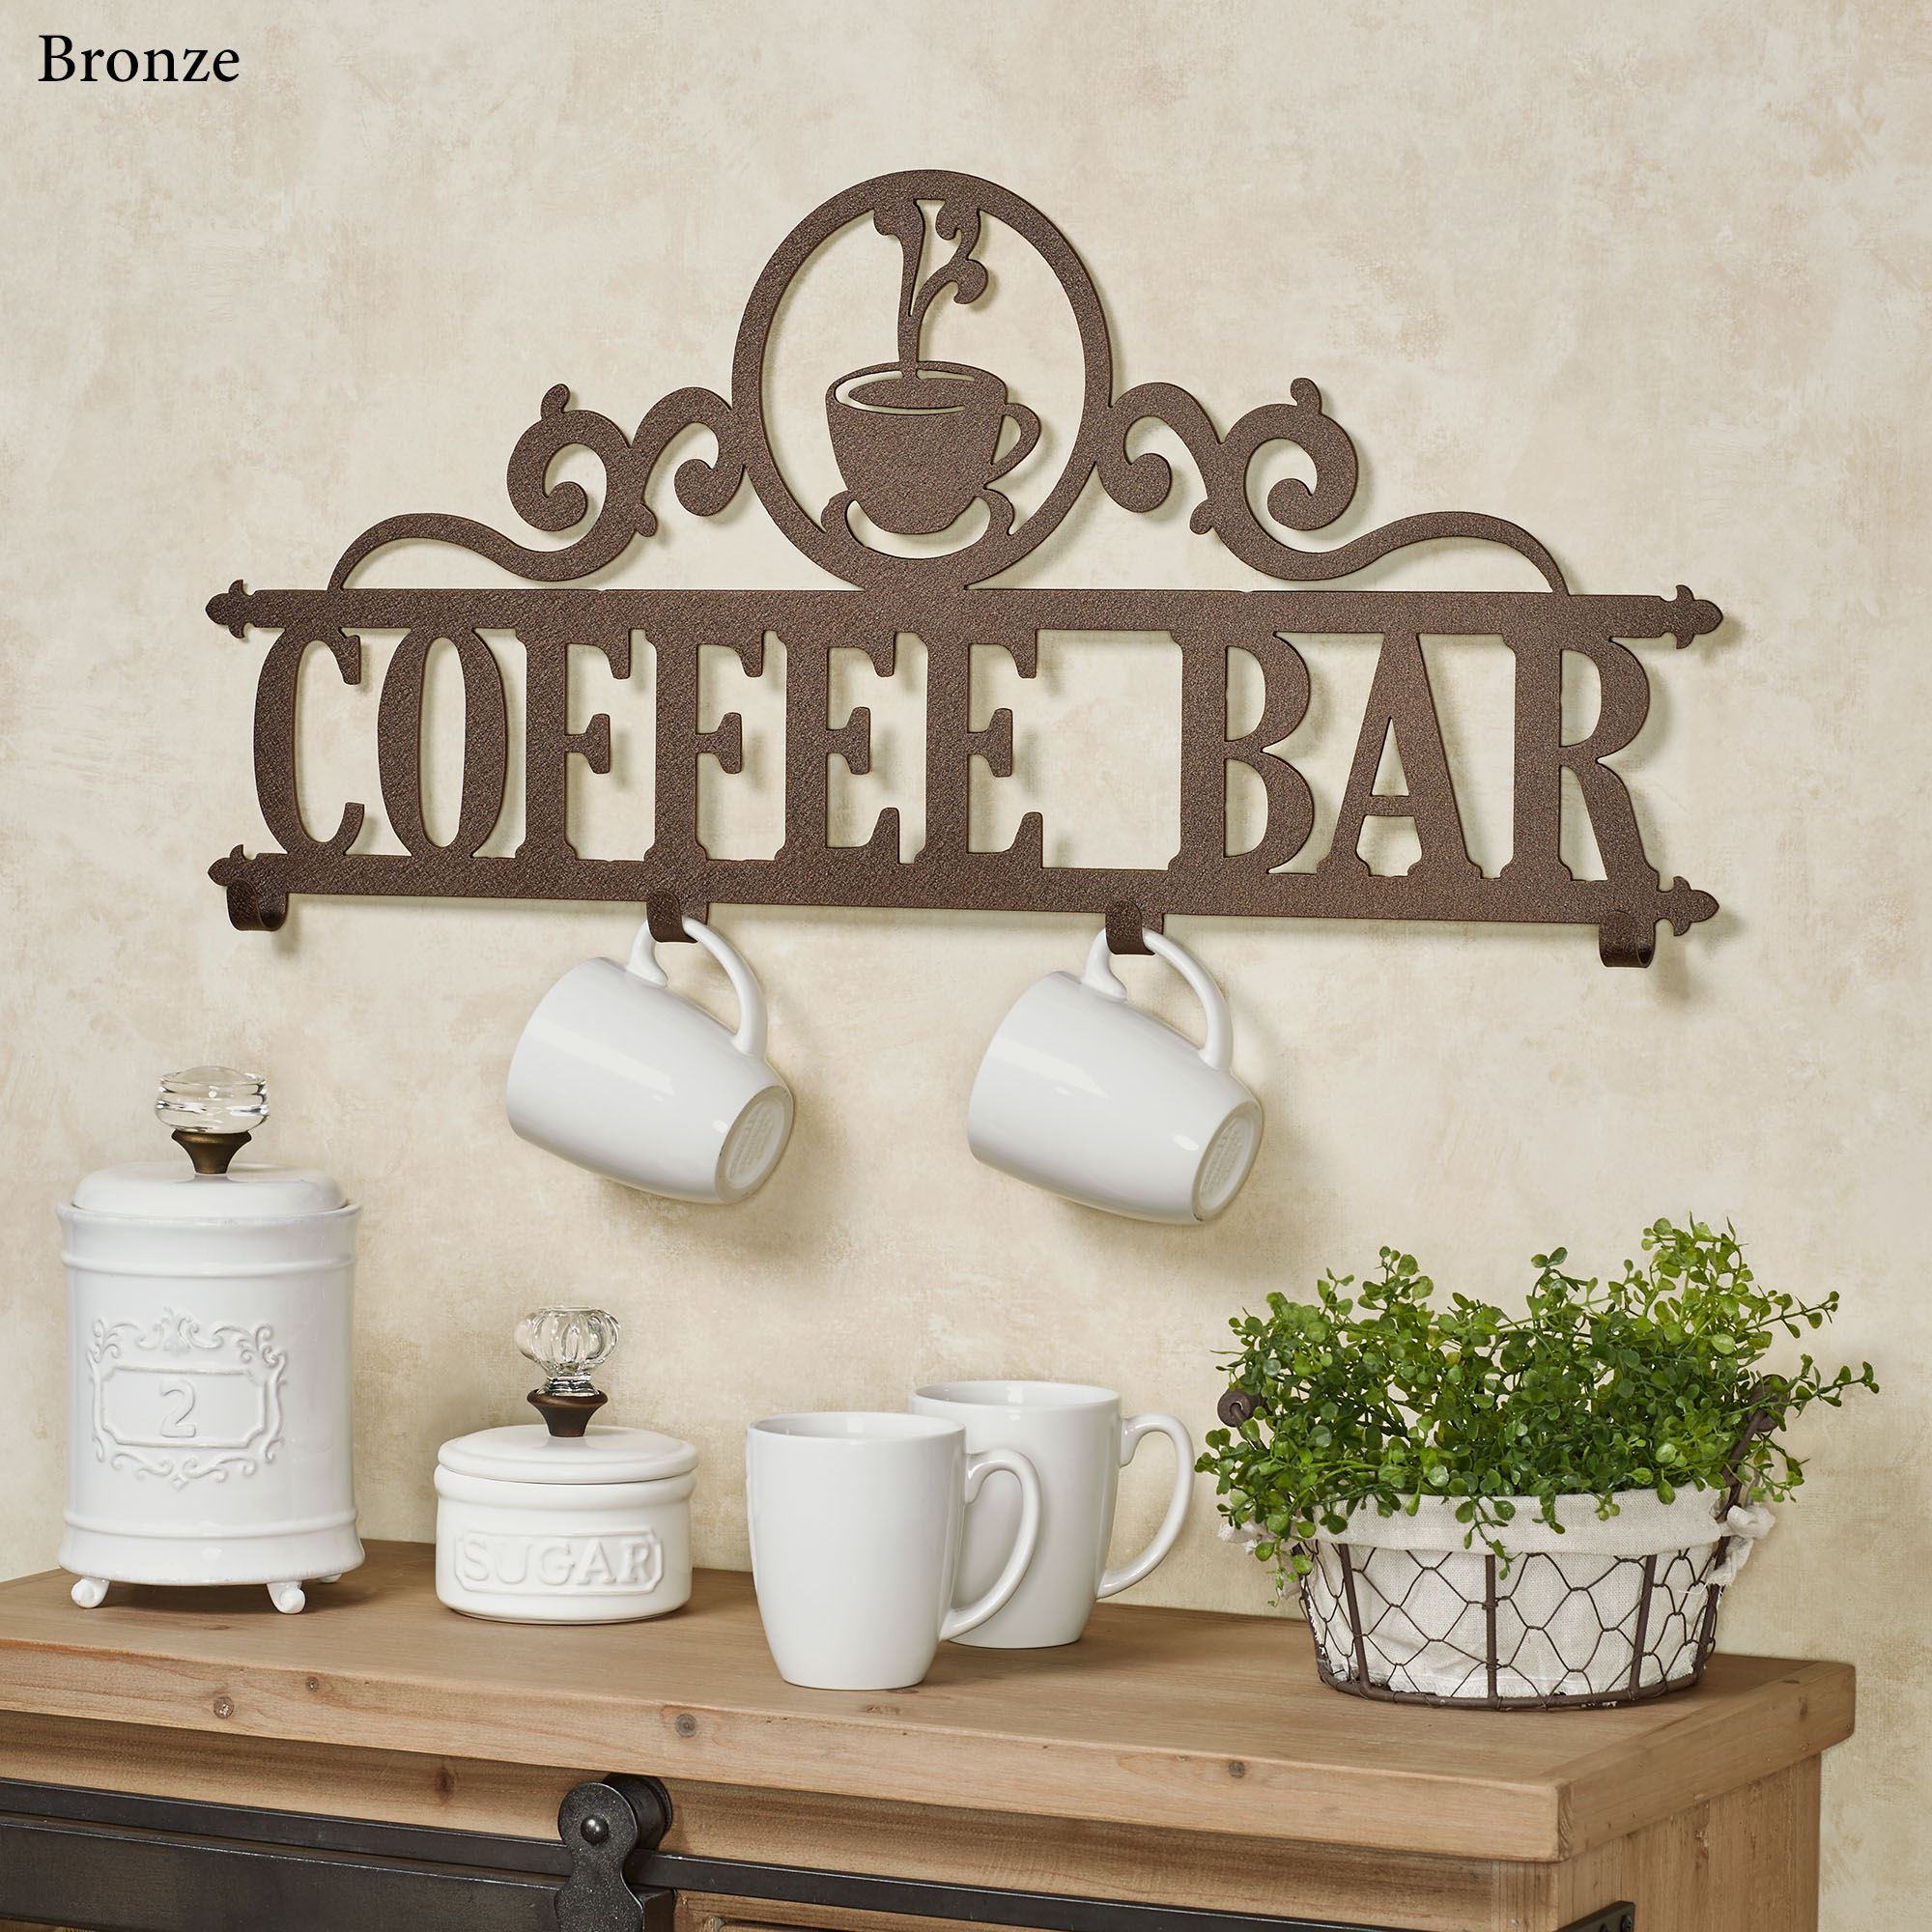 New Occasions Personalized Metal Wall Hook Rack Touch